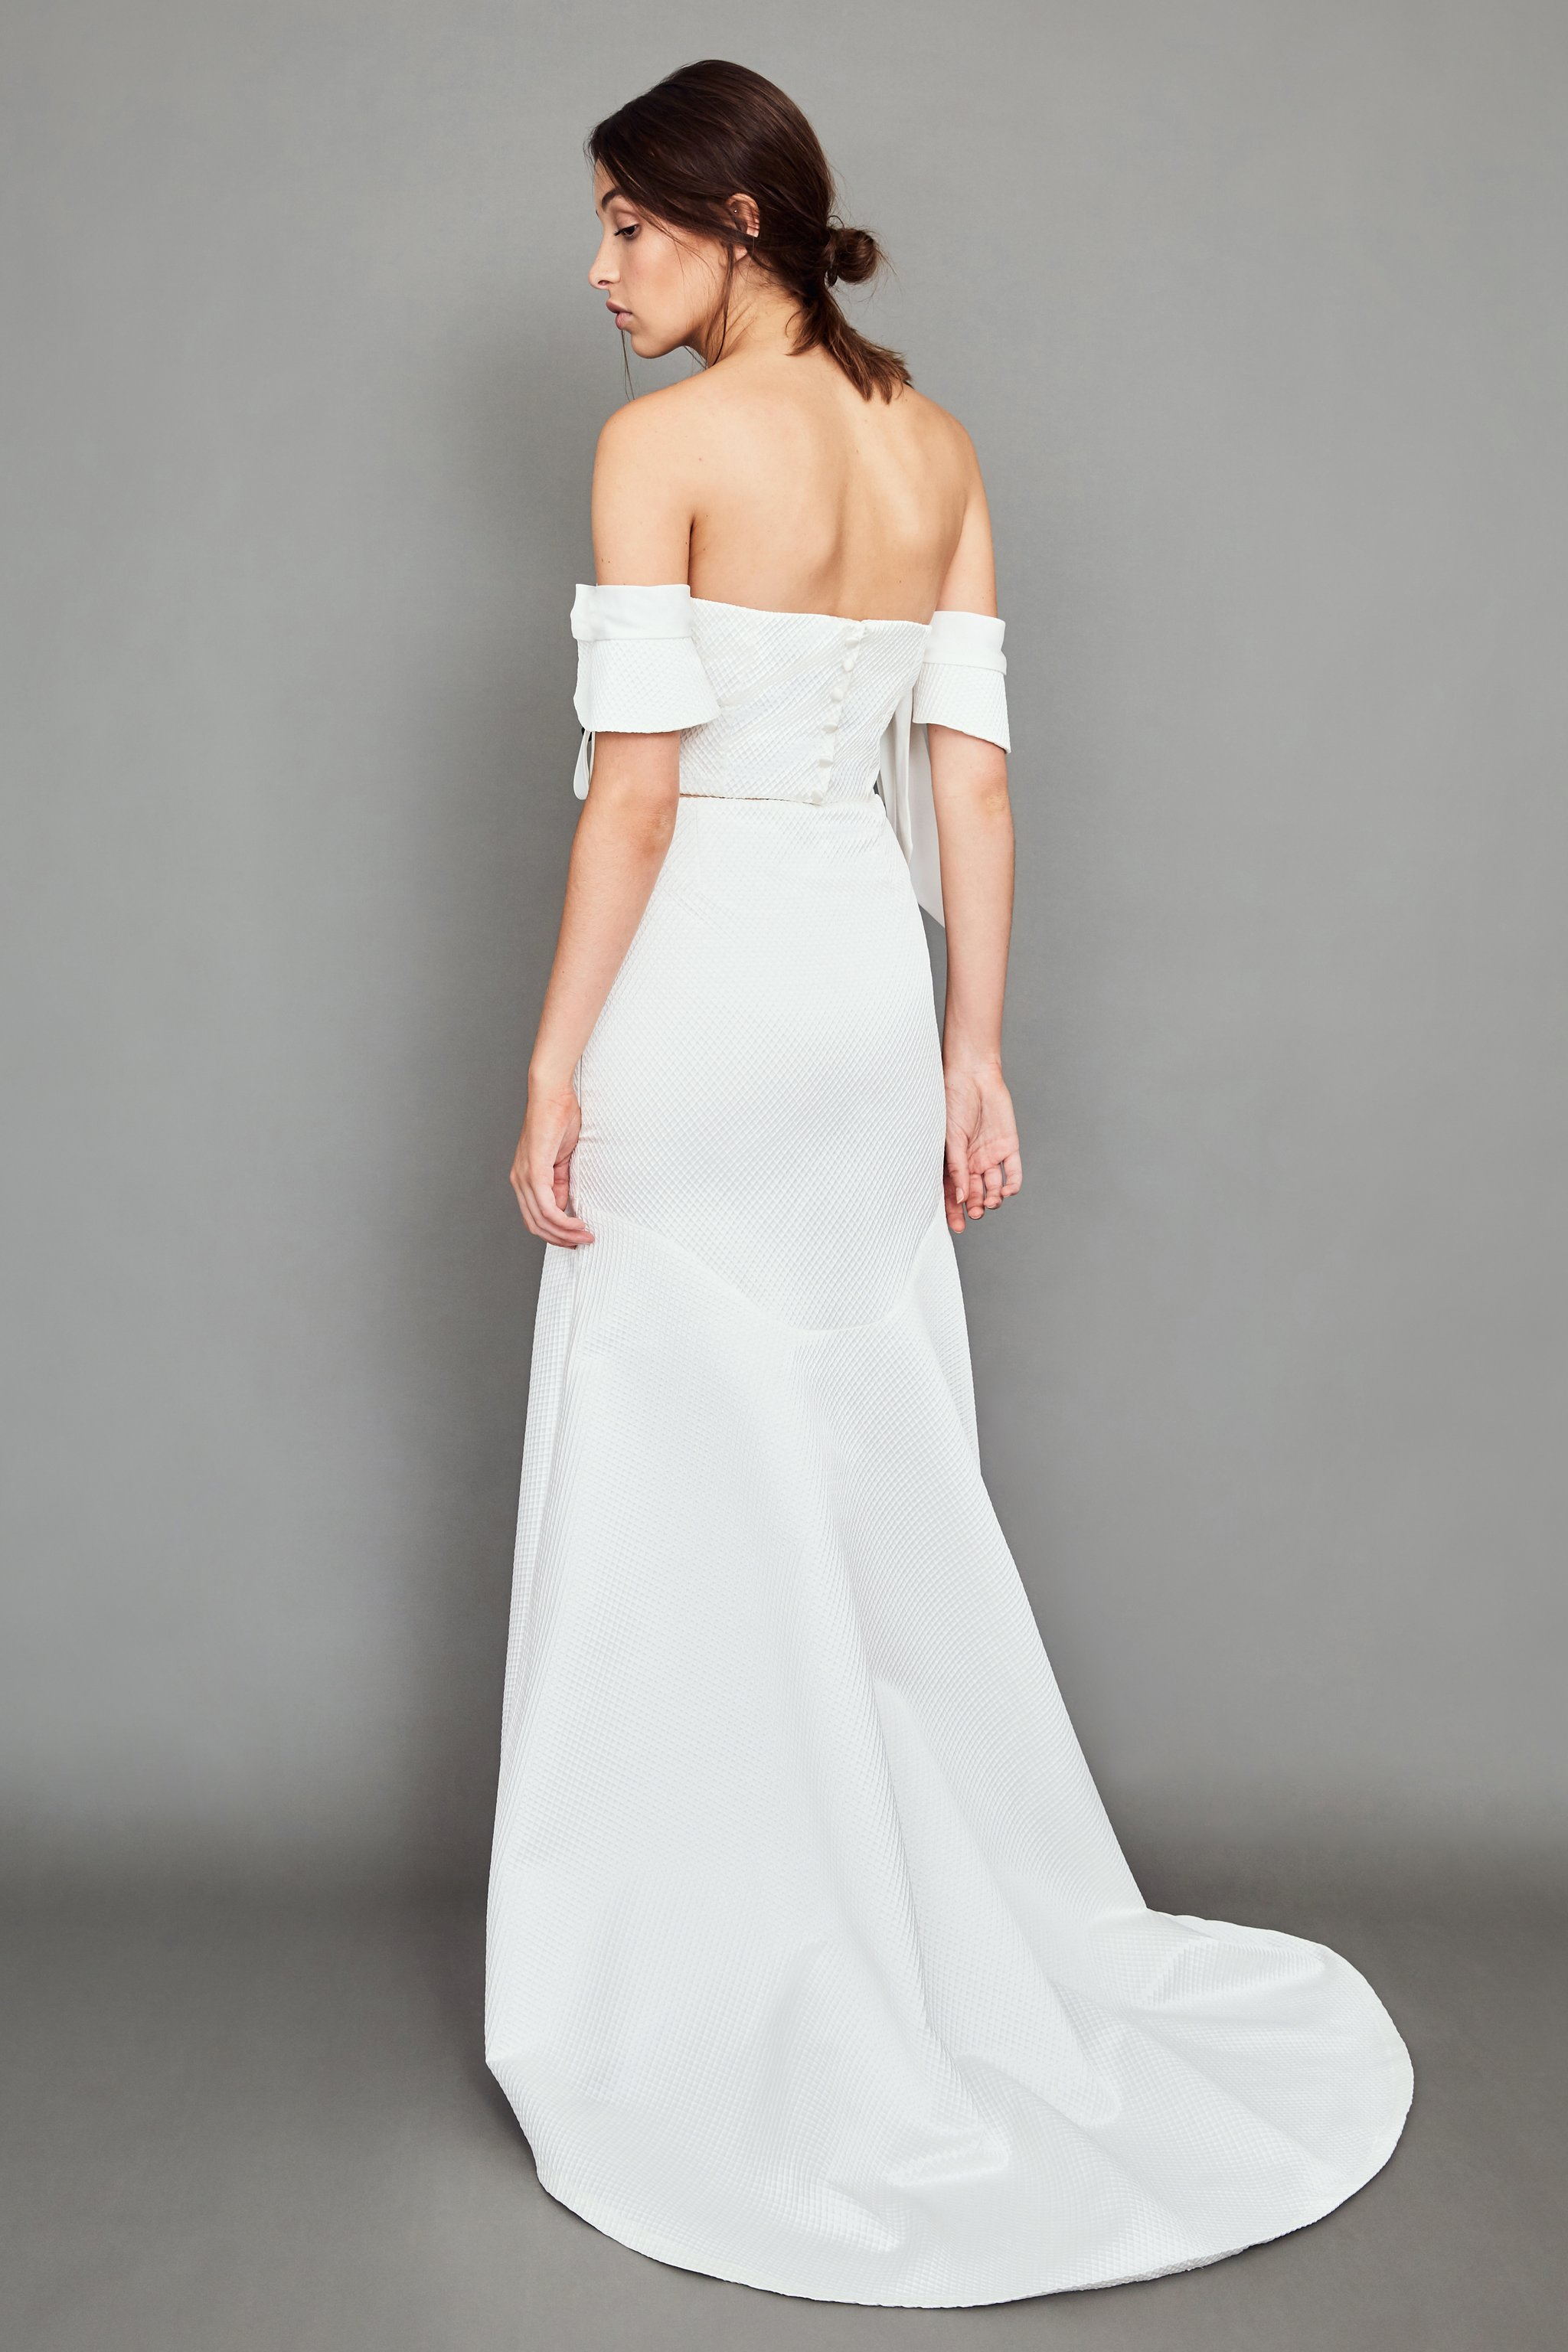 WHITE MEADOW BRIDAL Kindred Two Piece Wedding Dress | Wedding Dresses under $3,000 | LOVE FIND CO. Bridal Dress Directory